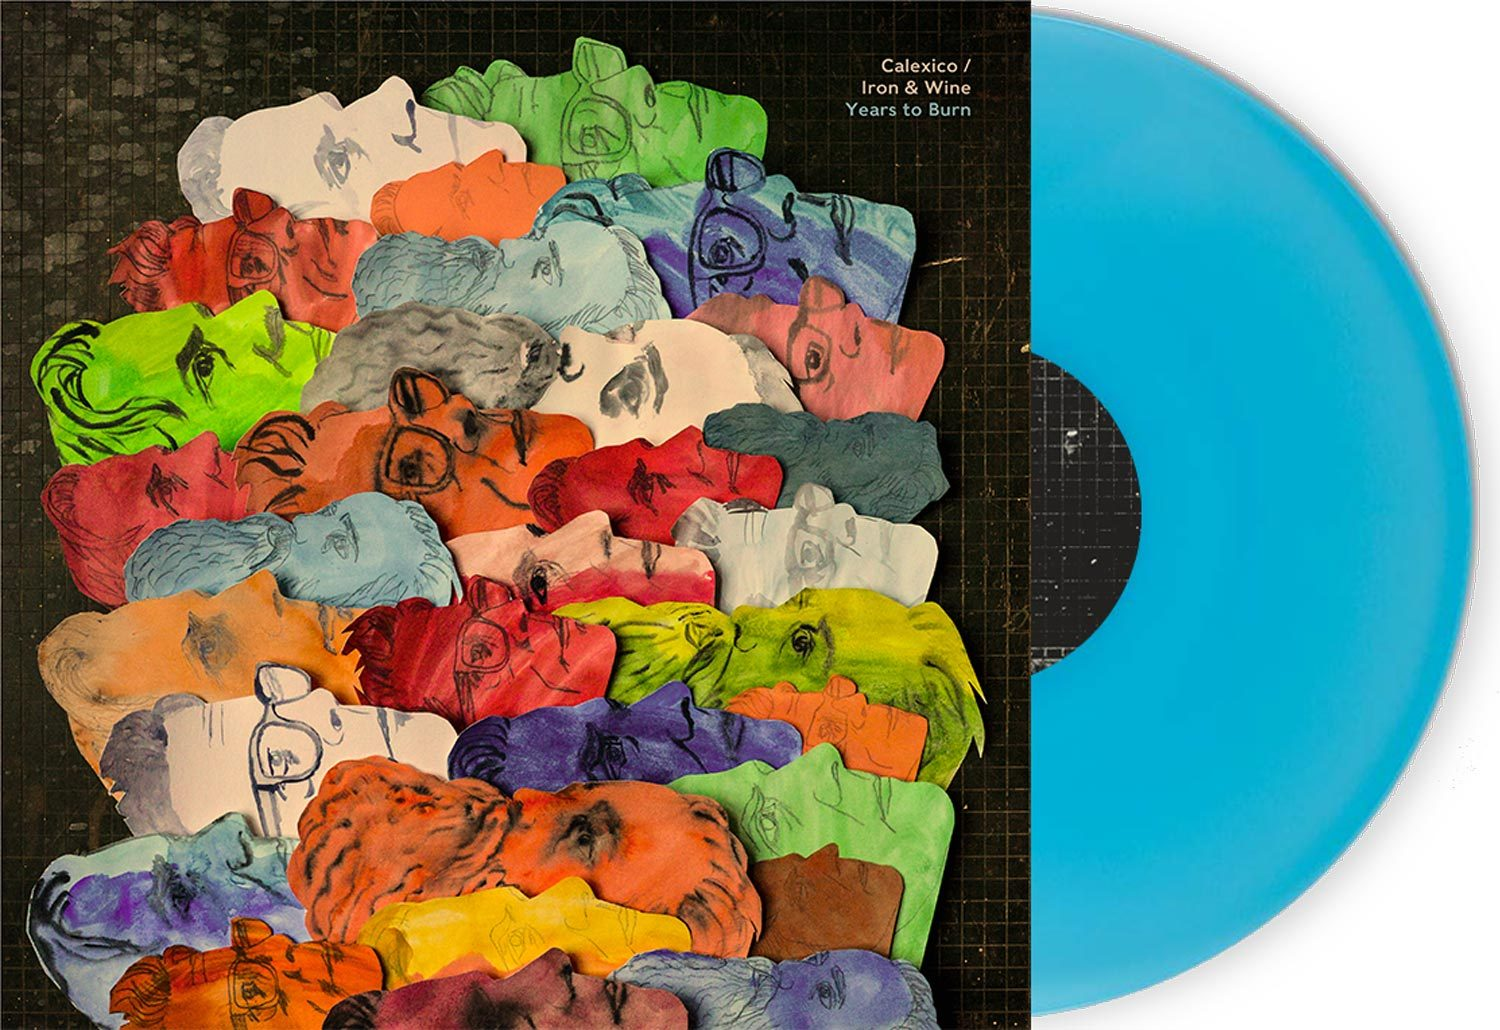 Years to Burn Limited Turquoise LP